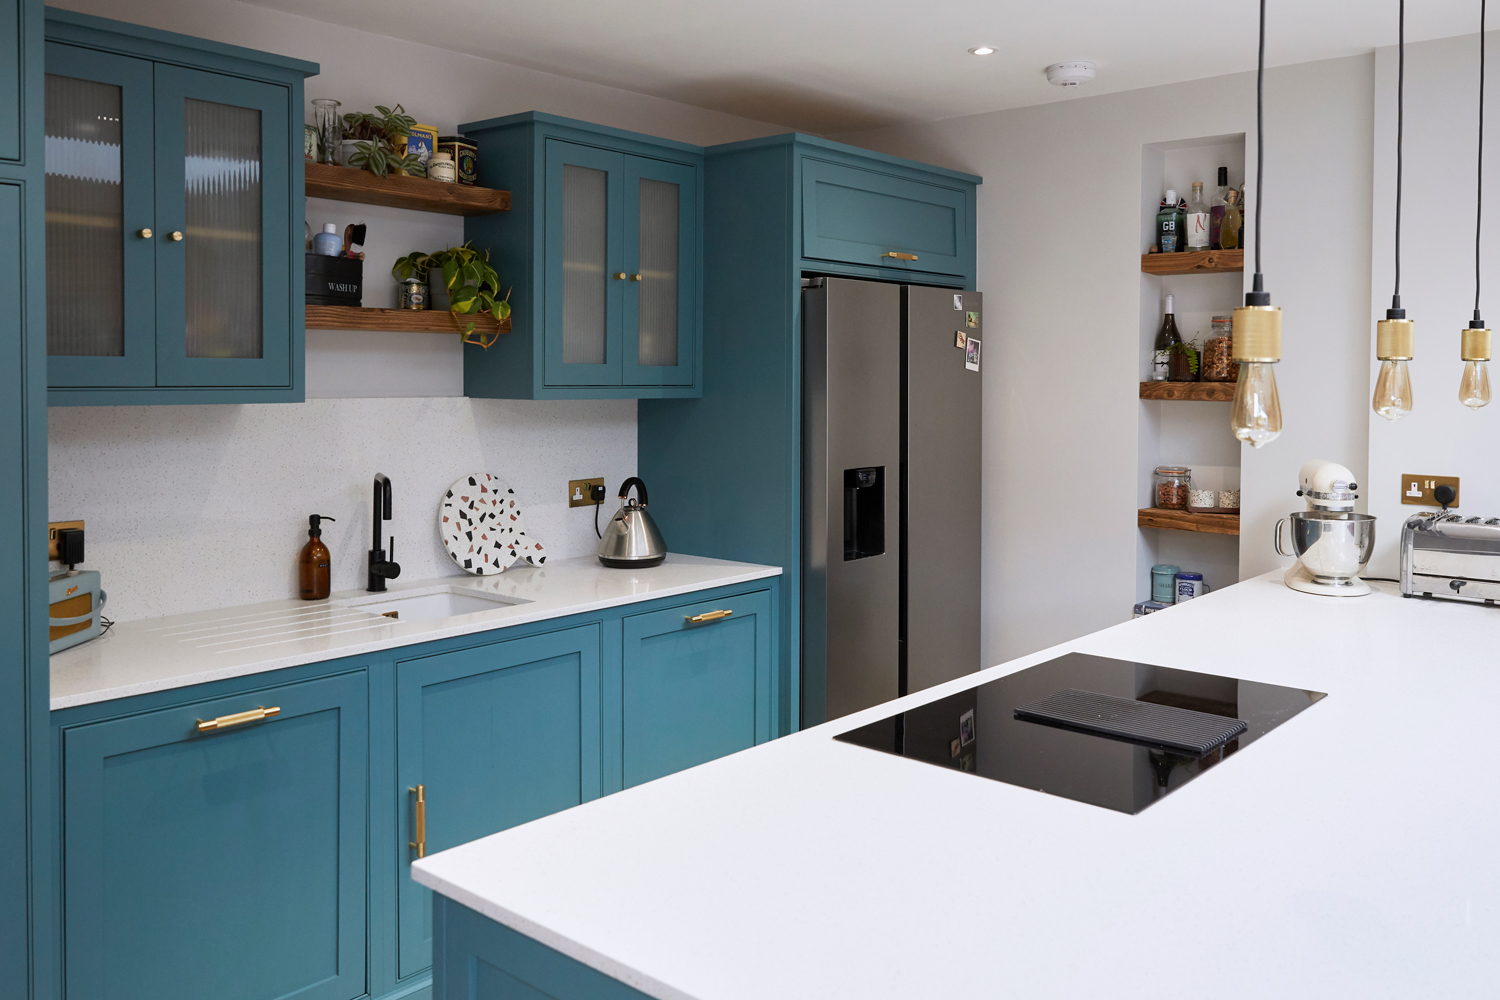 Tea With Florence bespoke kitchen with with quartz worktops and rustic open shelves